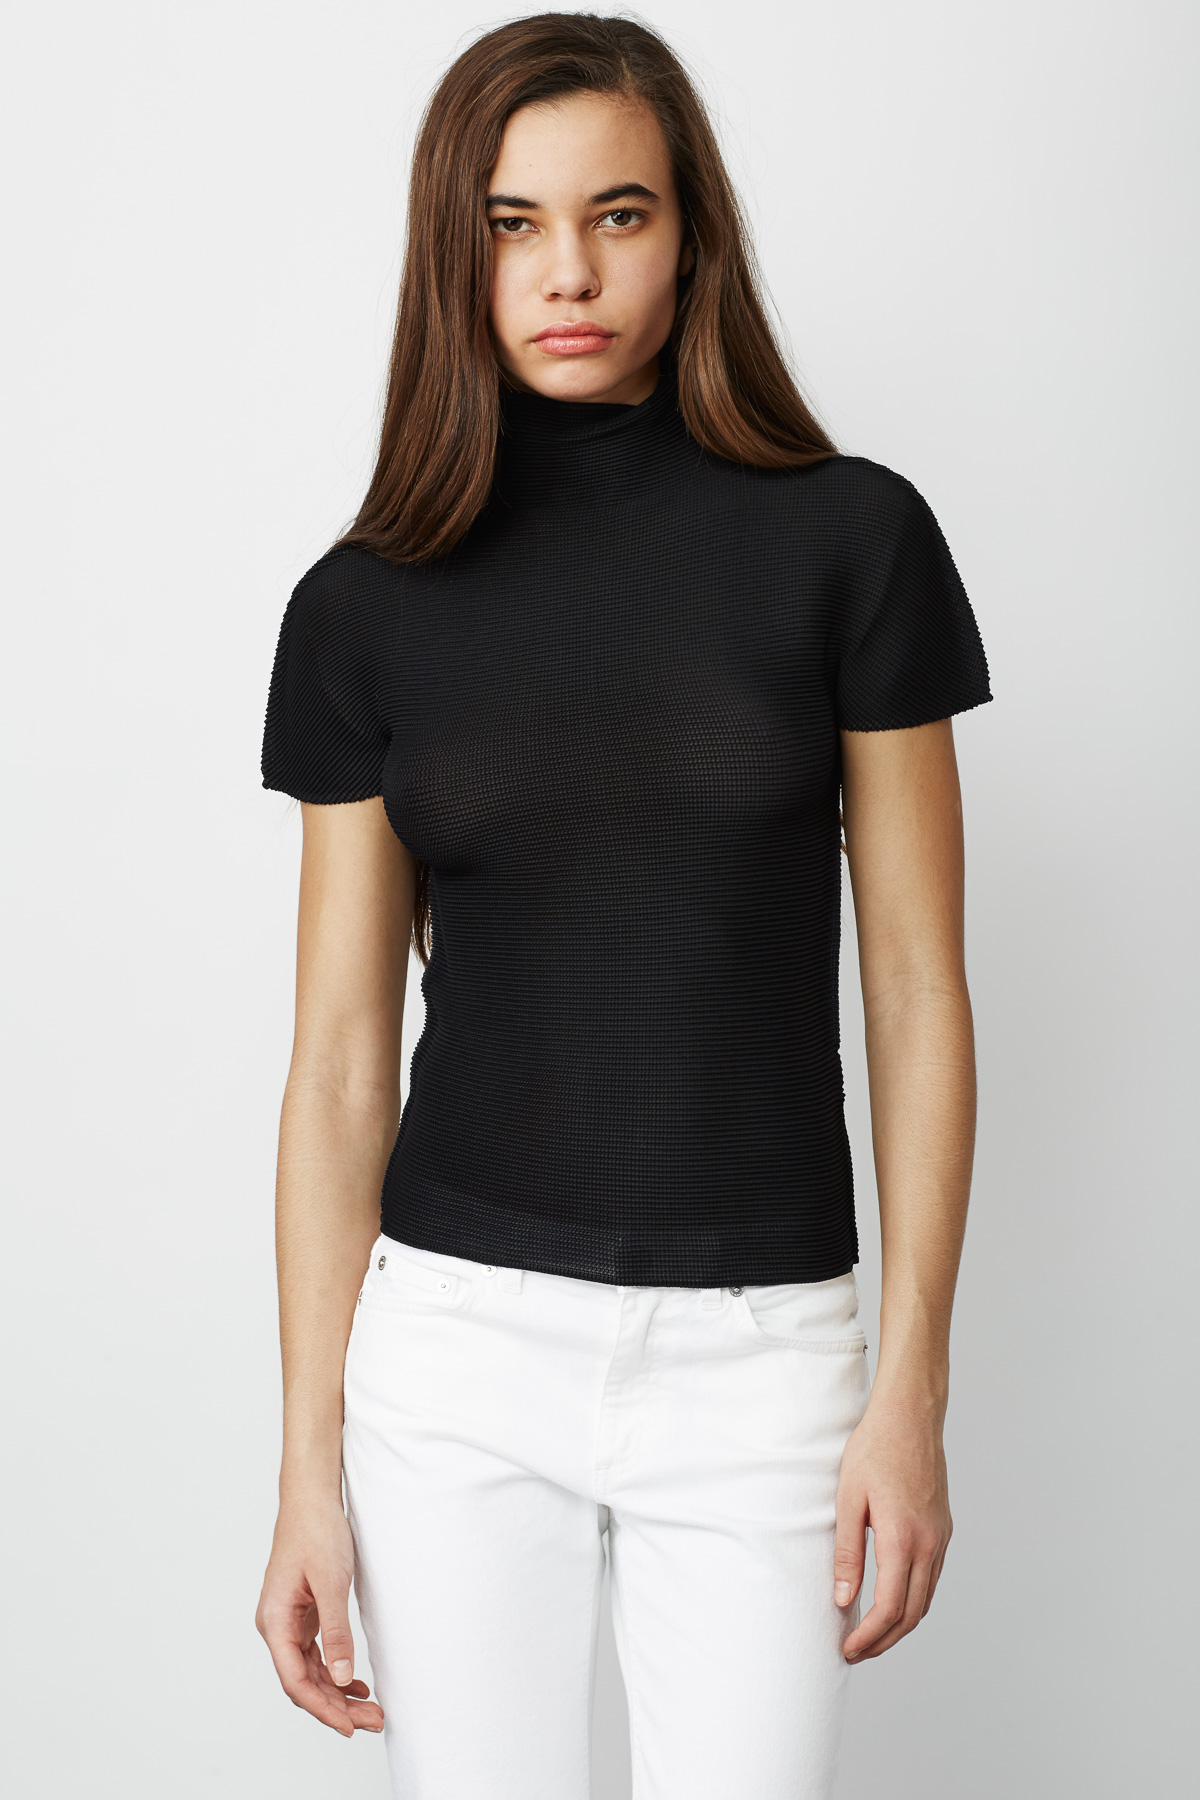 Cauliflower stretch pleated turtleneck t shirt women for Turtleneck under t shirt